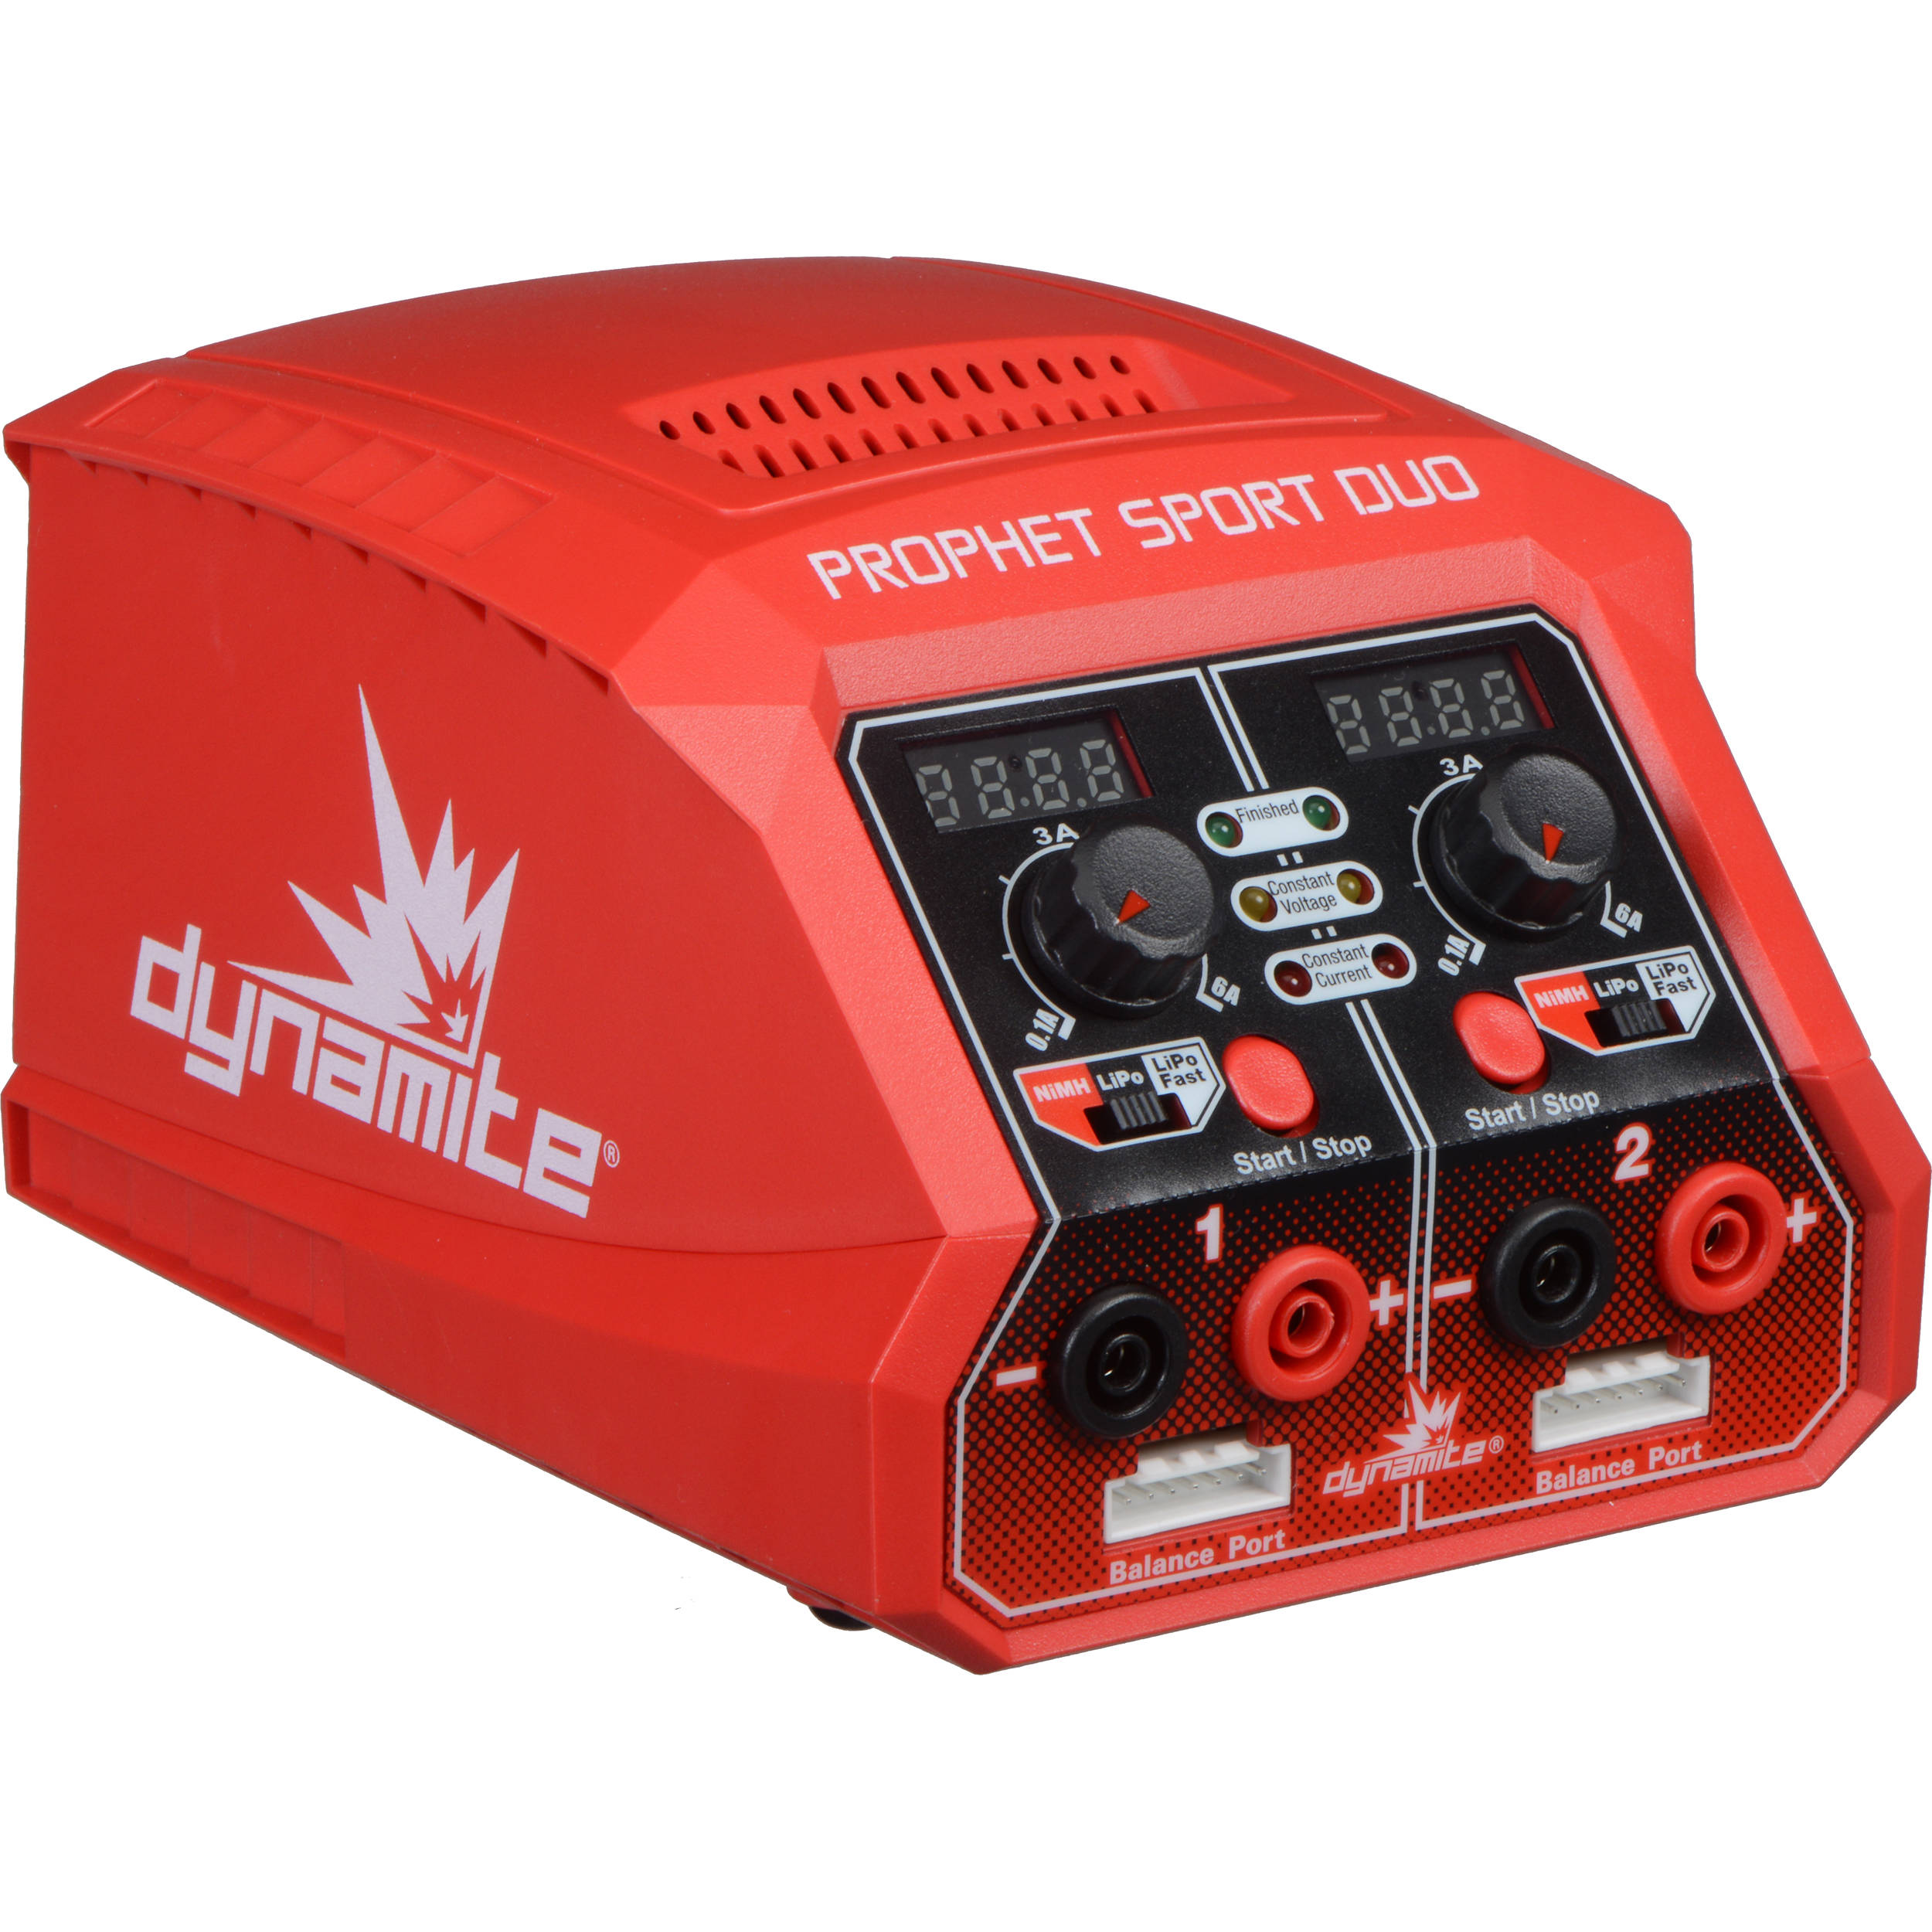 Dynamite Prophet Sport Duo Dual 50w Ac Battery Charger